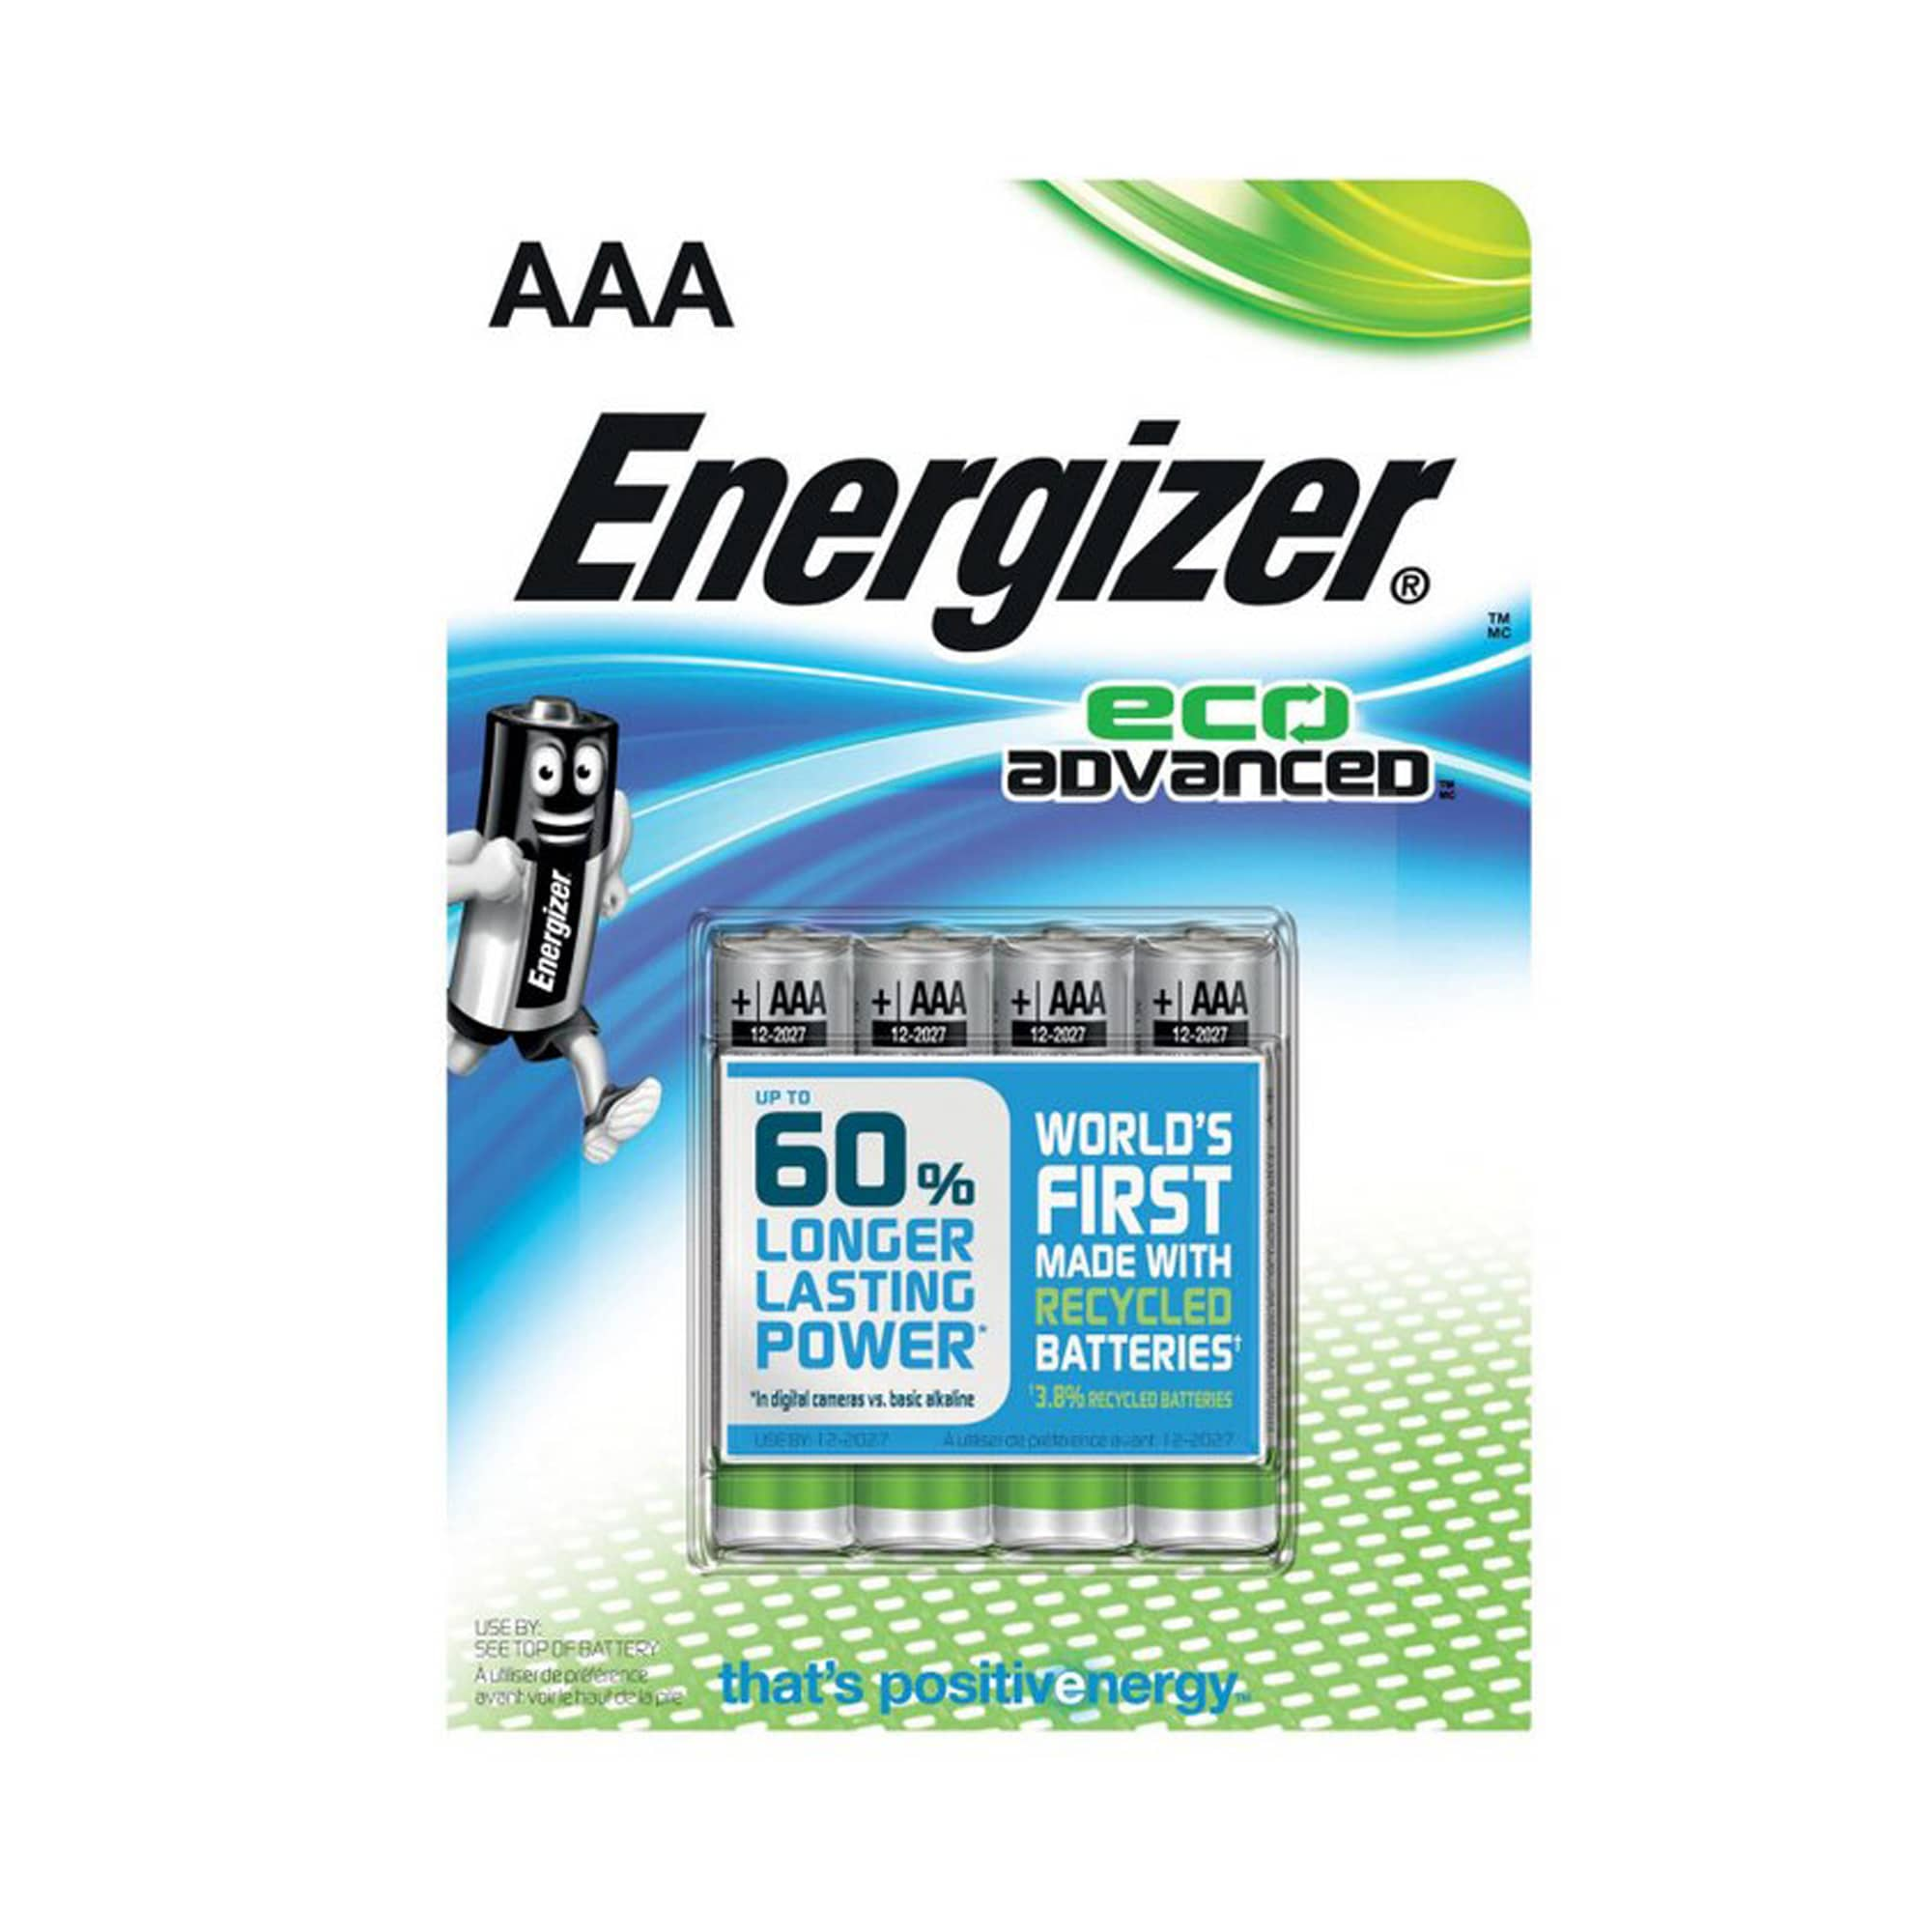 Energizer AAA Eco Advanced 4-PACK